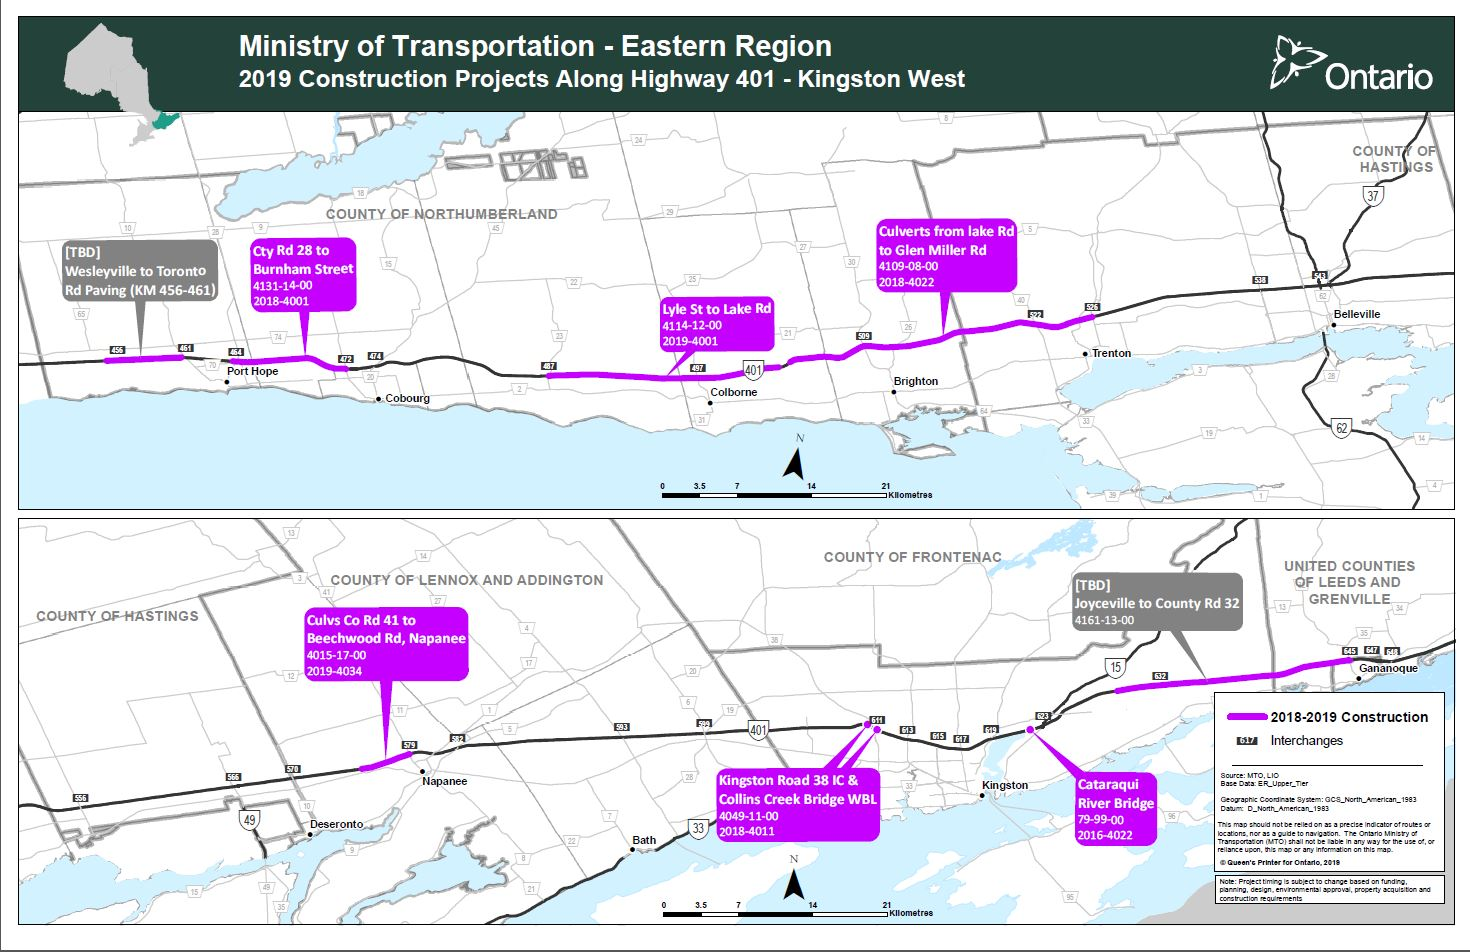 Highway 401 Kingston West Map